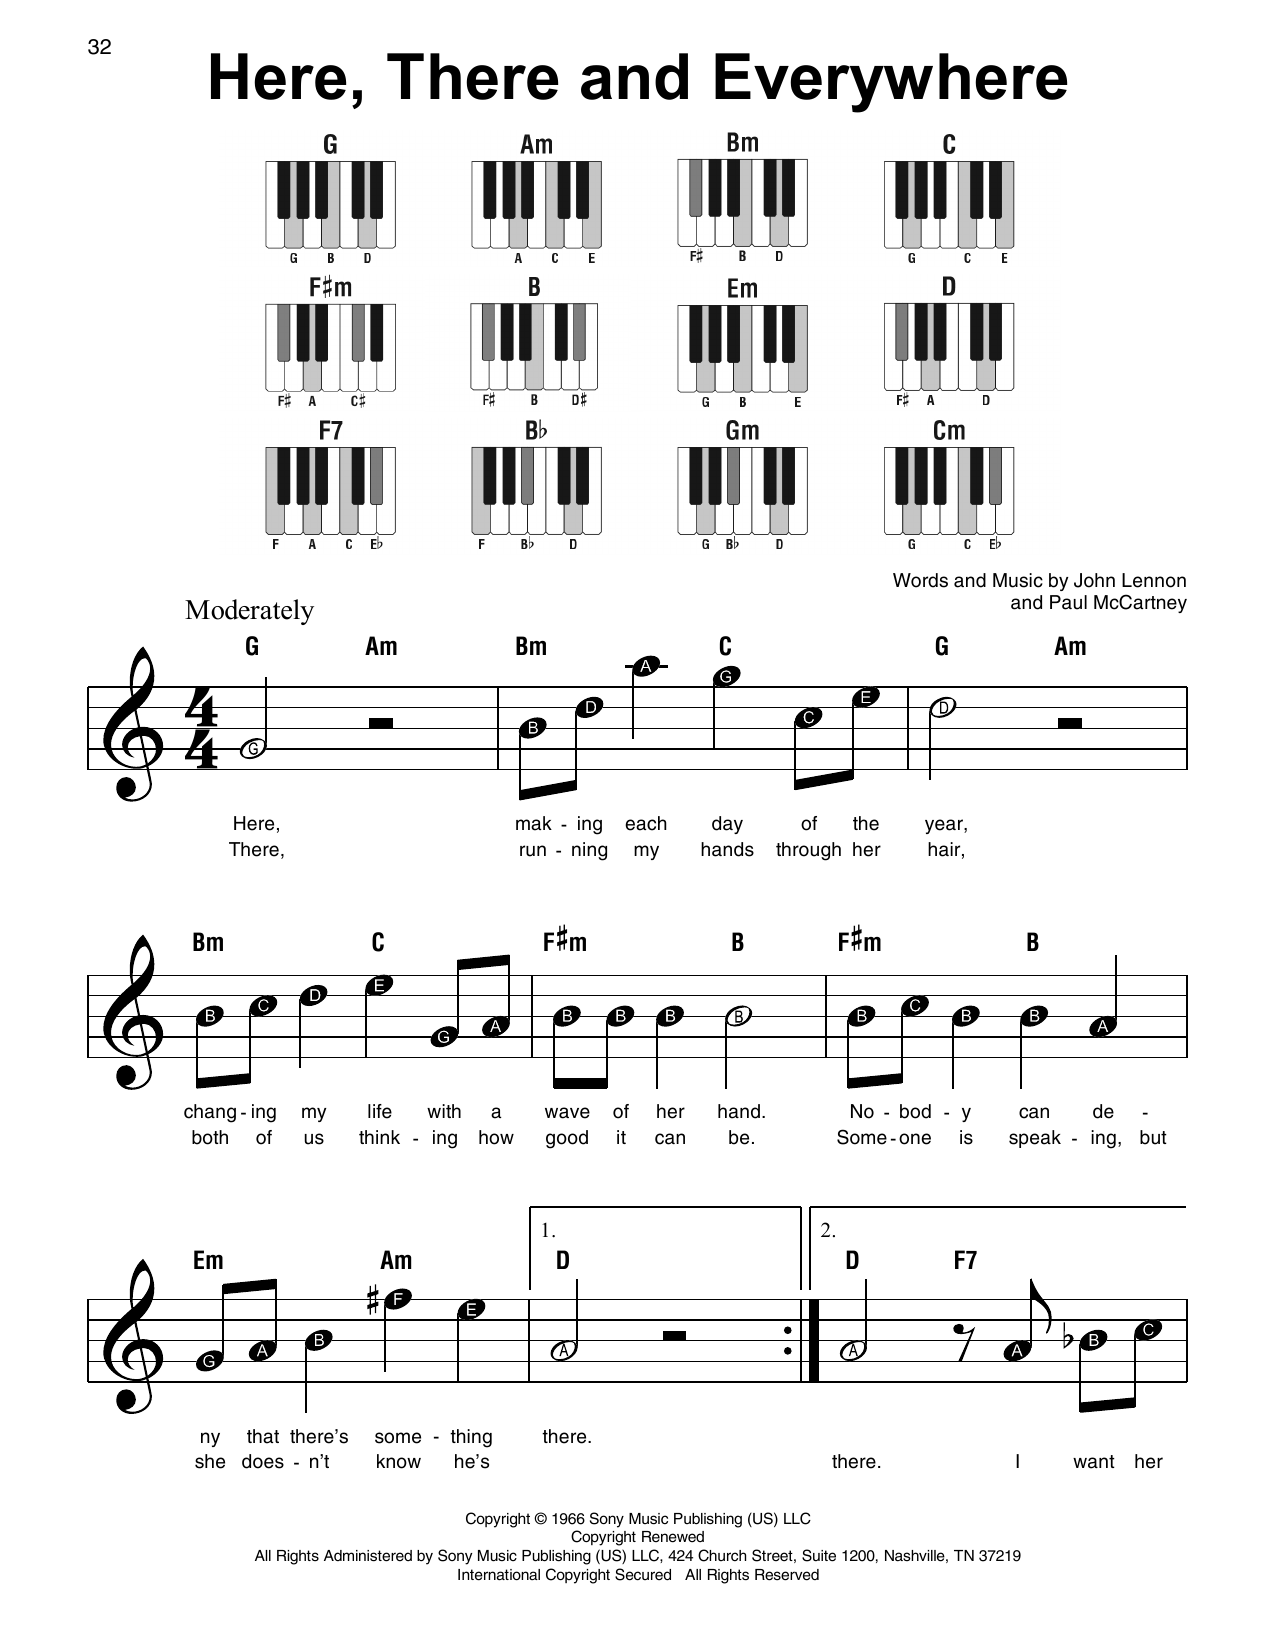 Here, There And Everywhere Sheet Music